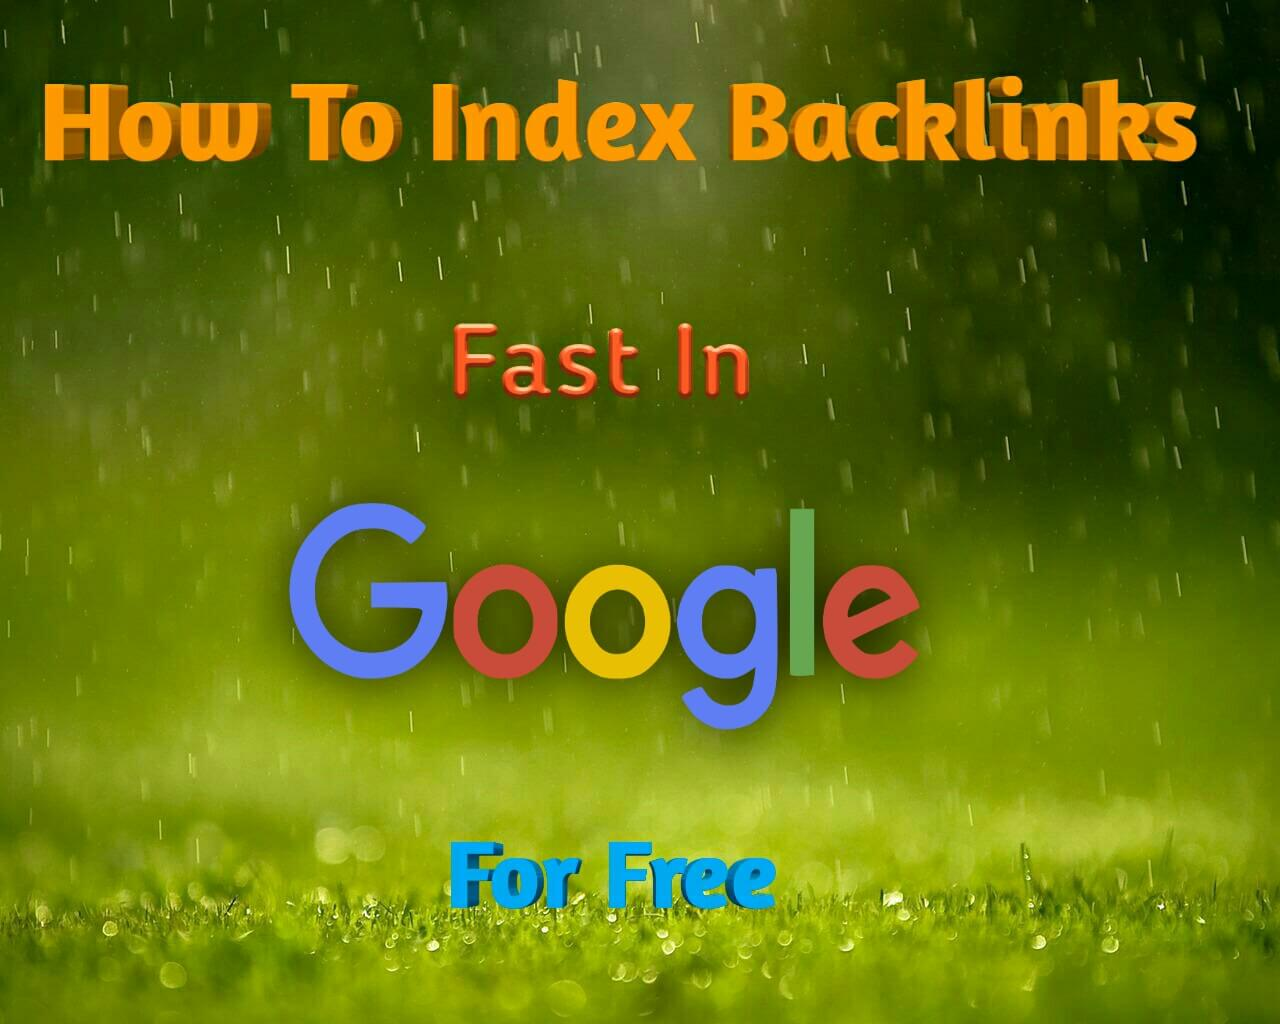 index-backlinks-fast-in-google-for-free